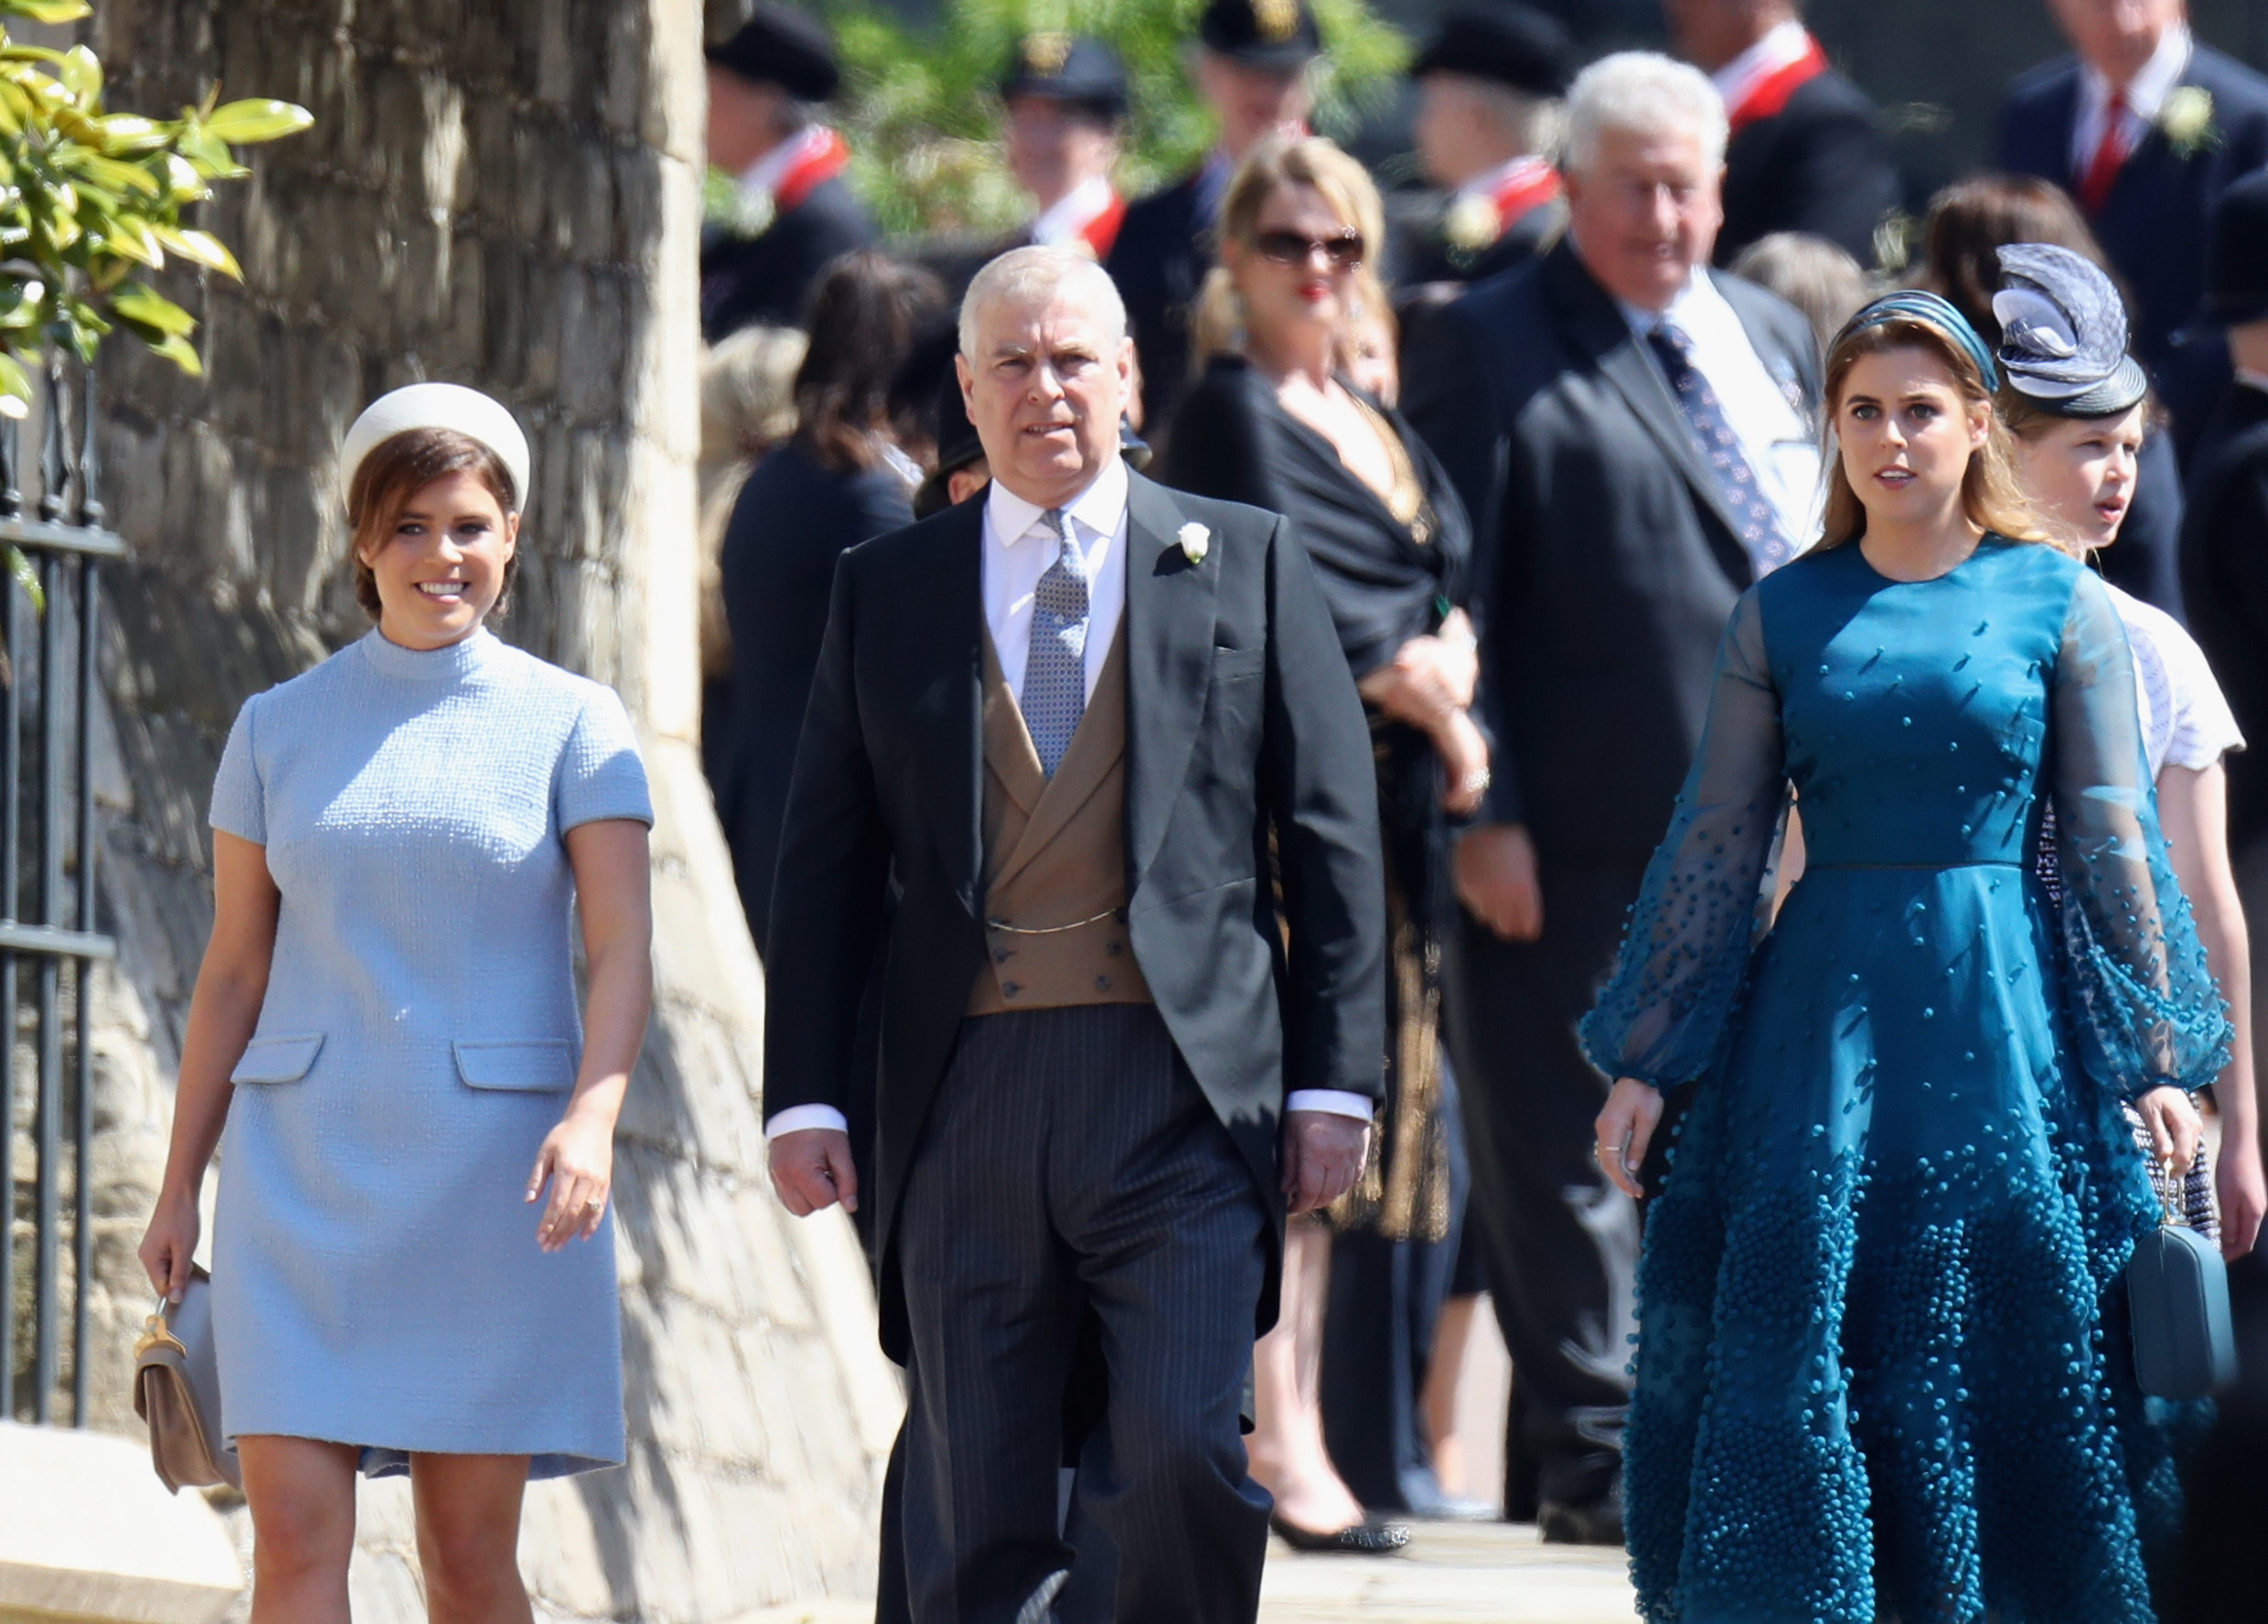 WINDSOR, ENGLAND - MAY 19: (L-R) Princess Eugenie, Prince Andrew, Duke of York and Princess Beatrice attend the wedding of Prince Harry to Ms Meghan Markle at St George's Chapel, Windsor Castle on May 19, 2018 in Windsor, England. Prince Henry Charles Albert David of Wales marries Ms. Meghan Markle in a service at St George's Chapel inside the grounds of Windsor Castle. Among the guests were 2200 members of the public, the royal family and Ms. Markle's Mother Doria Ragland.